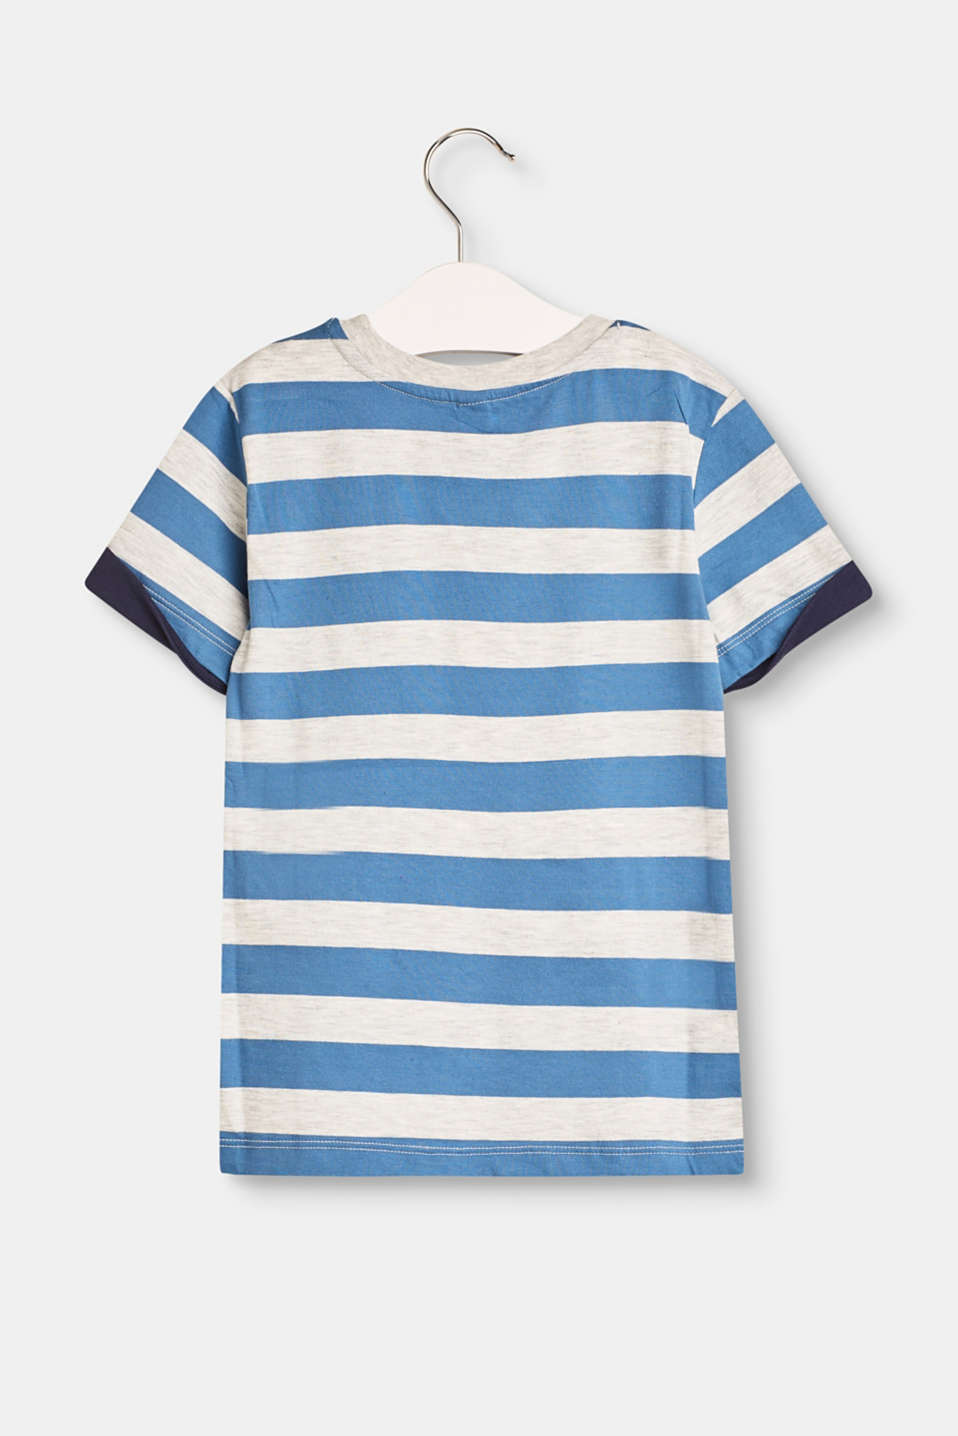 Striped T-shirt with a breast pocket